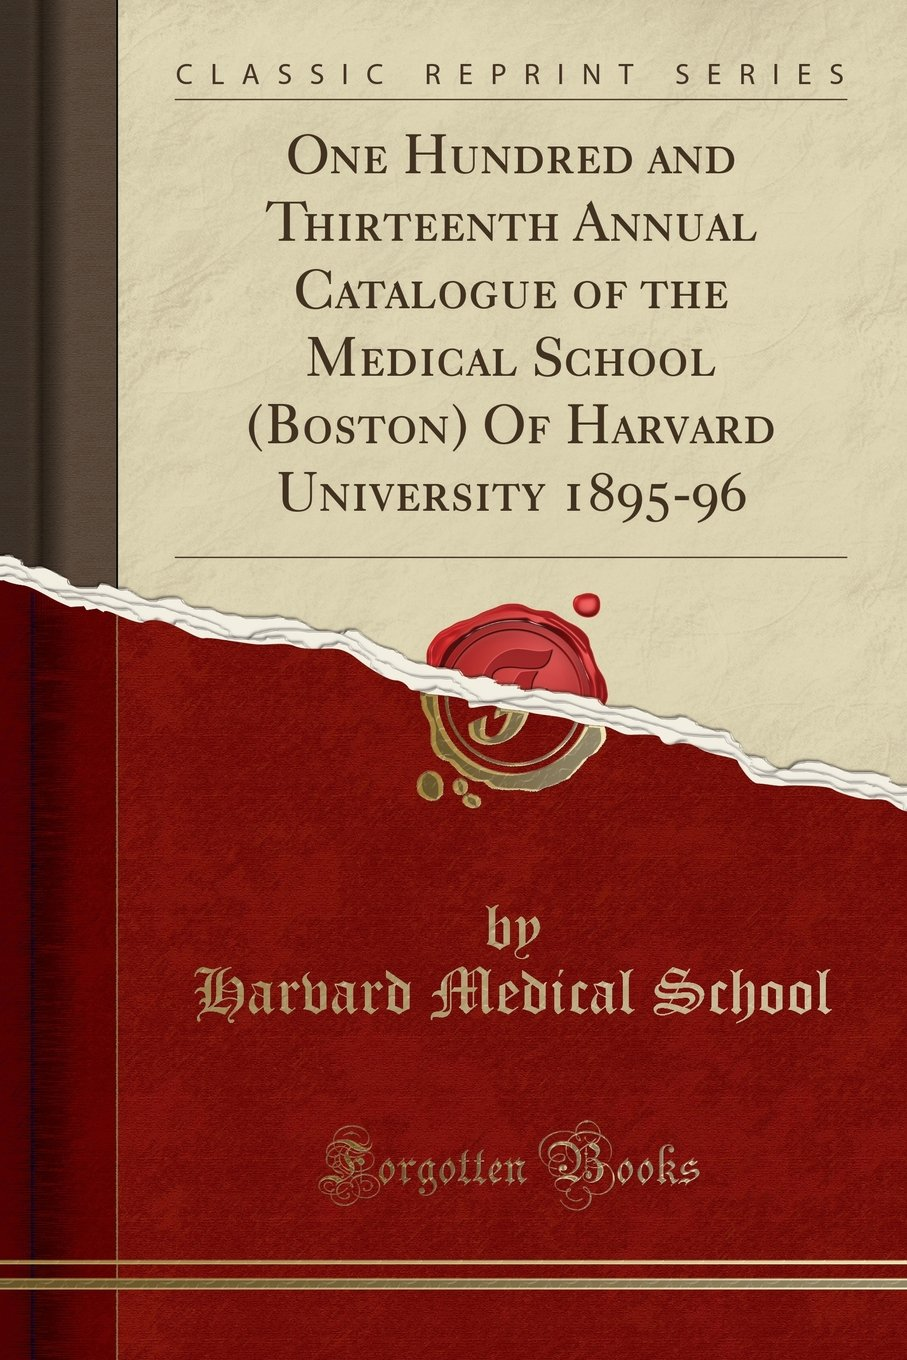 Download One Hundred and Thirteenth Annual Catalogue of the Medical School (Boston) Of Harvard University 1895-96 (Classic Reprint) PDF